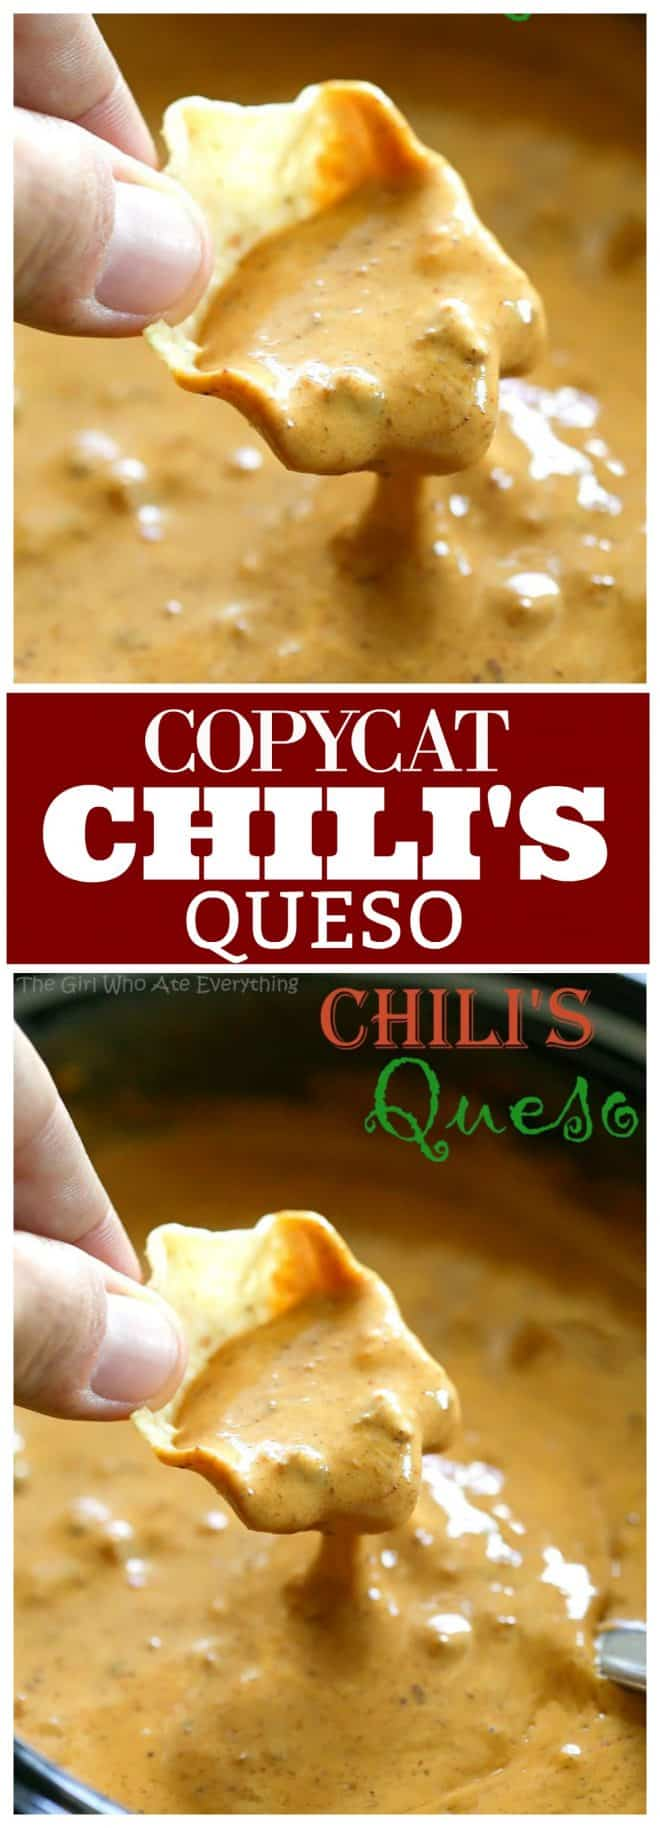 This is a copycat version of Chili's Queso Dip which is one of my family's favorites. Throw this Chili's Queso Dip together in the slow cooker or heat on the stove, either way it's a quick crowd pleasing appetizer. the-girl-who-ate-everything.com